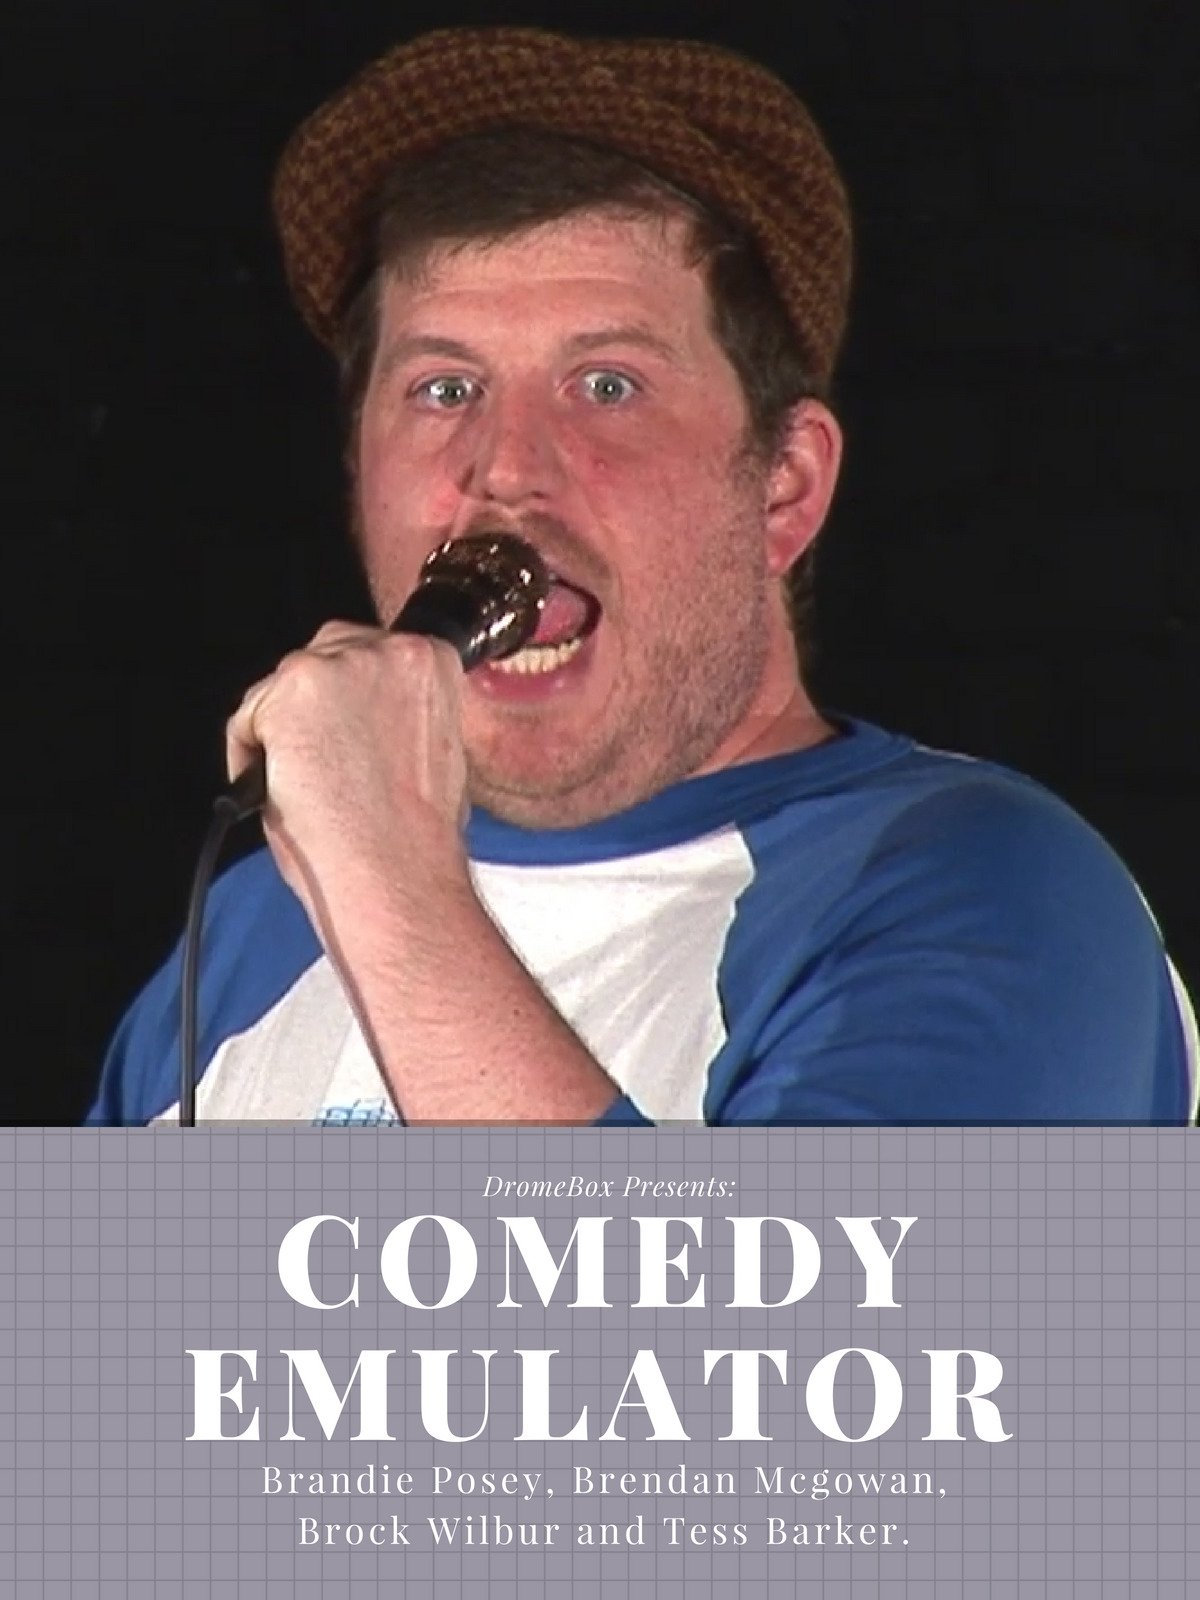 The Comedy Emulator II